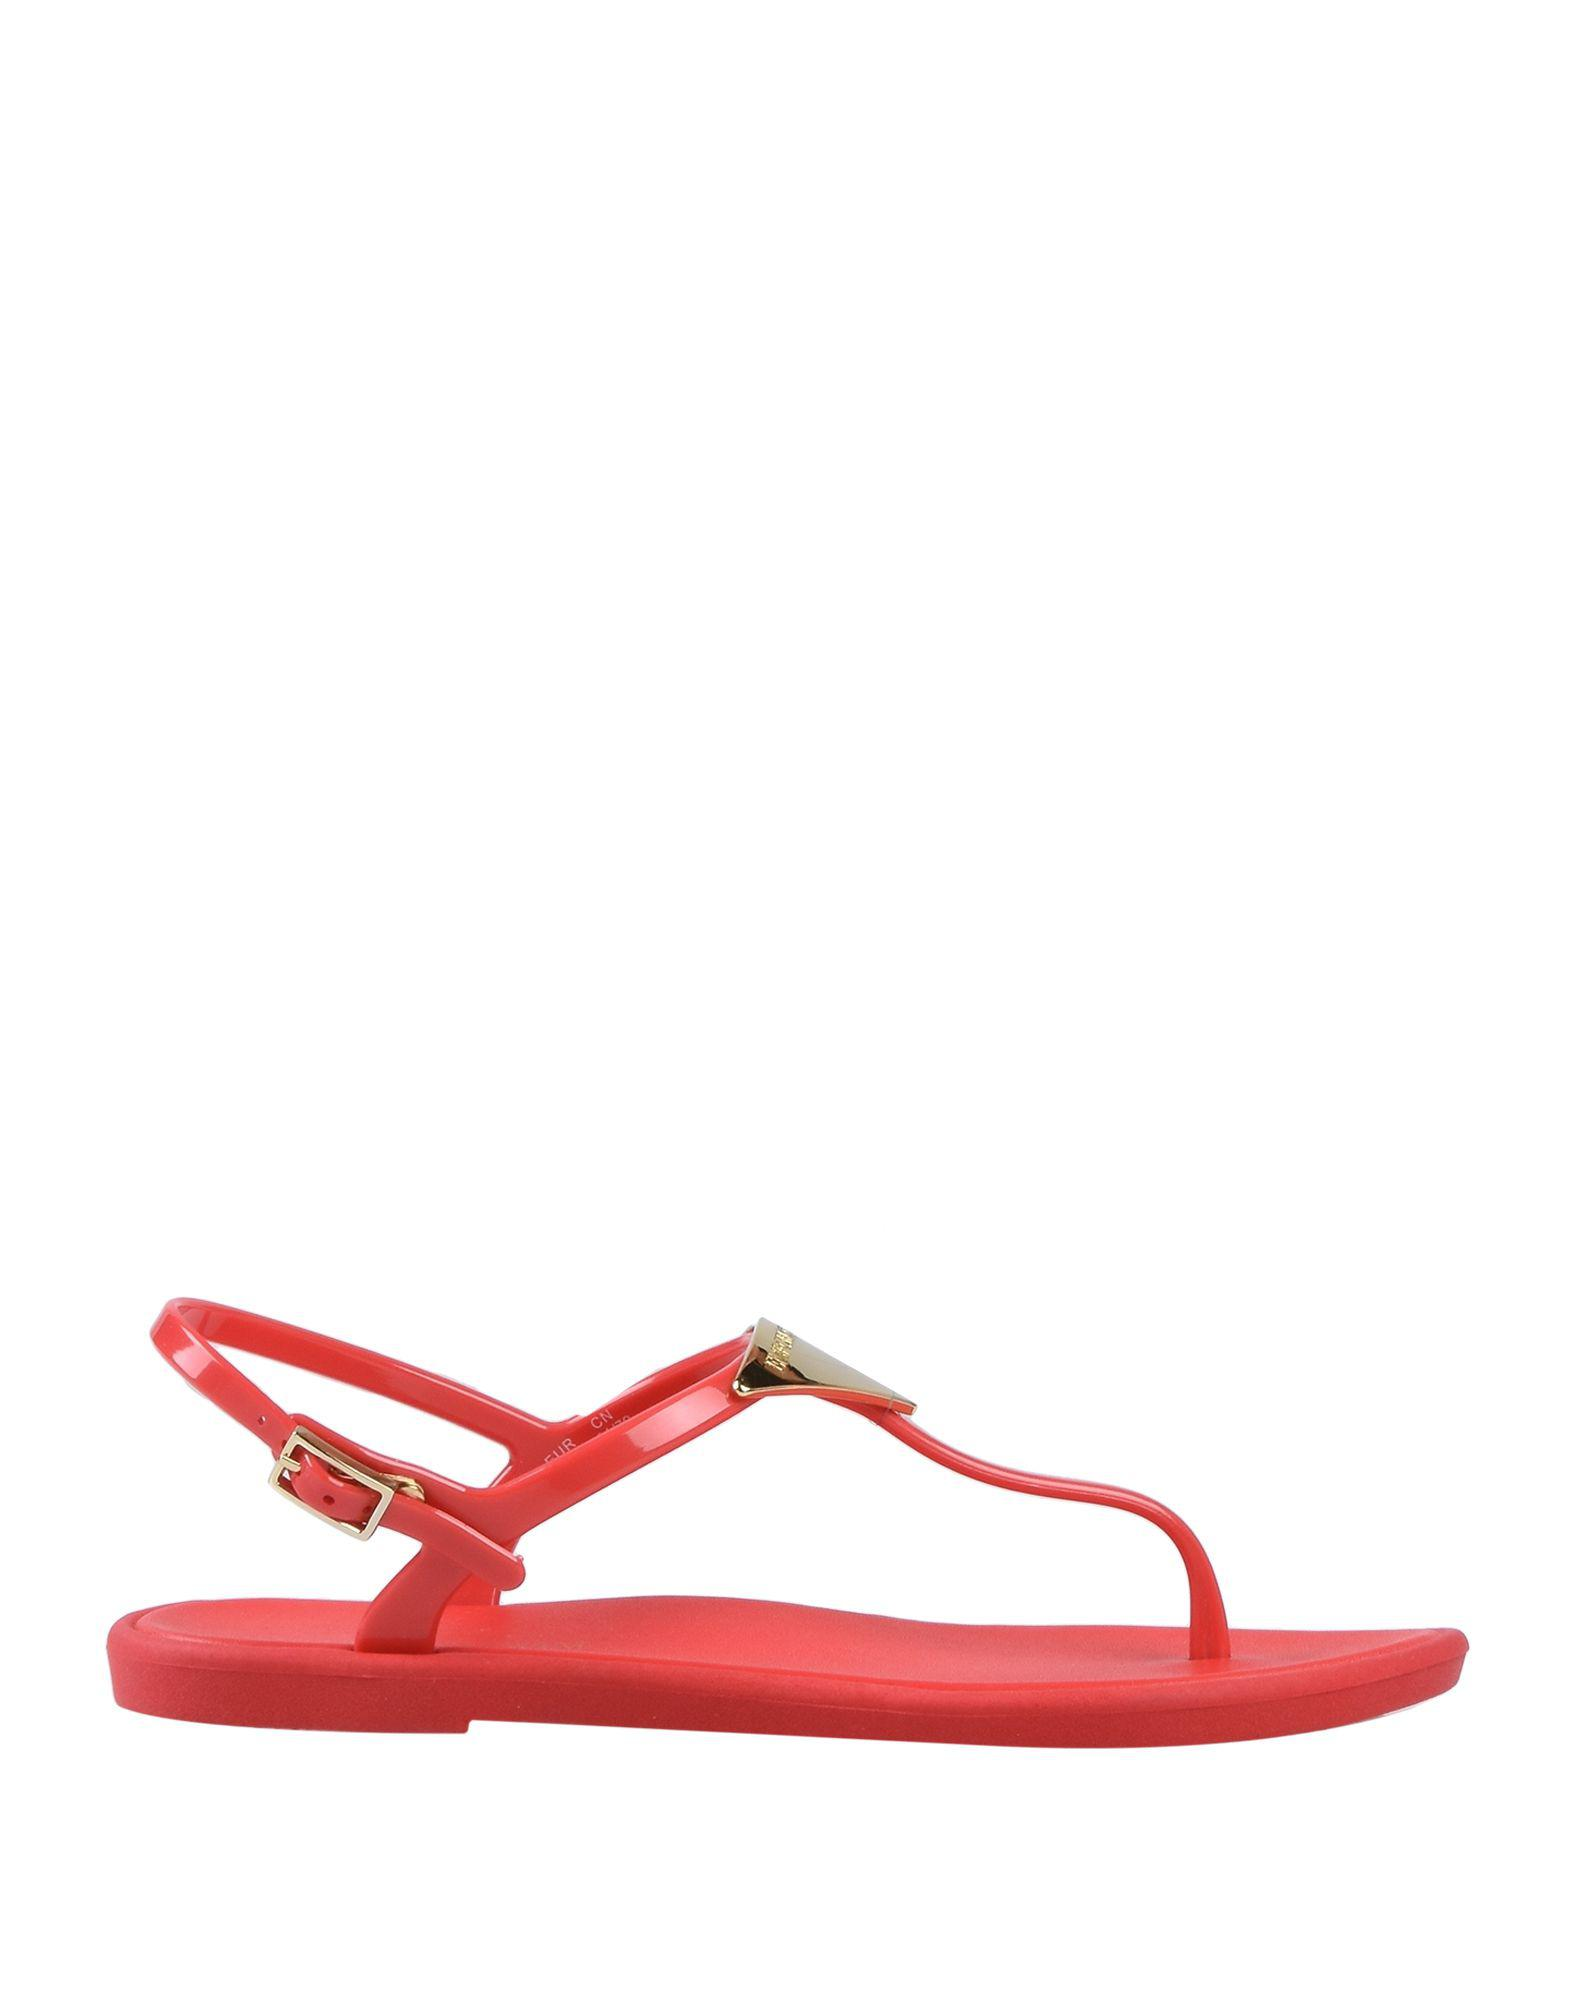 462bc8db90d0 Lyst - Emporio Armani Sandals in Red